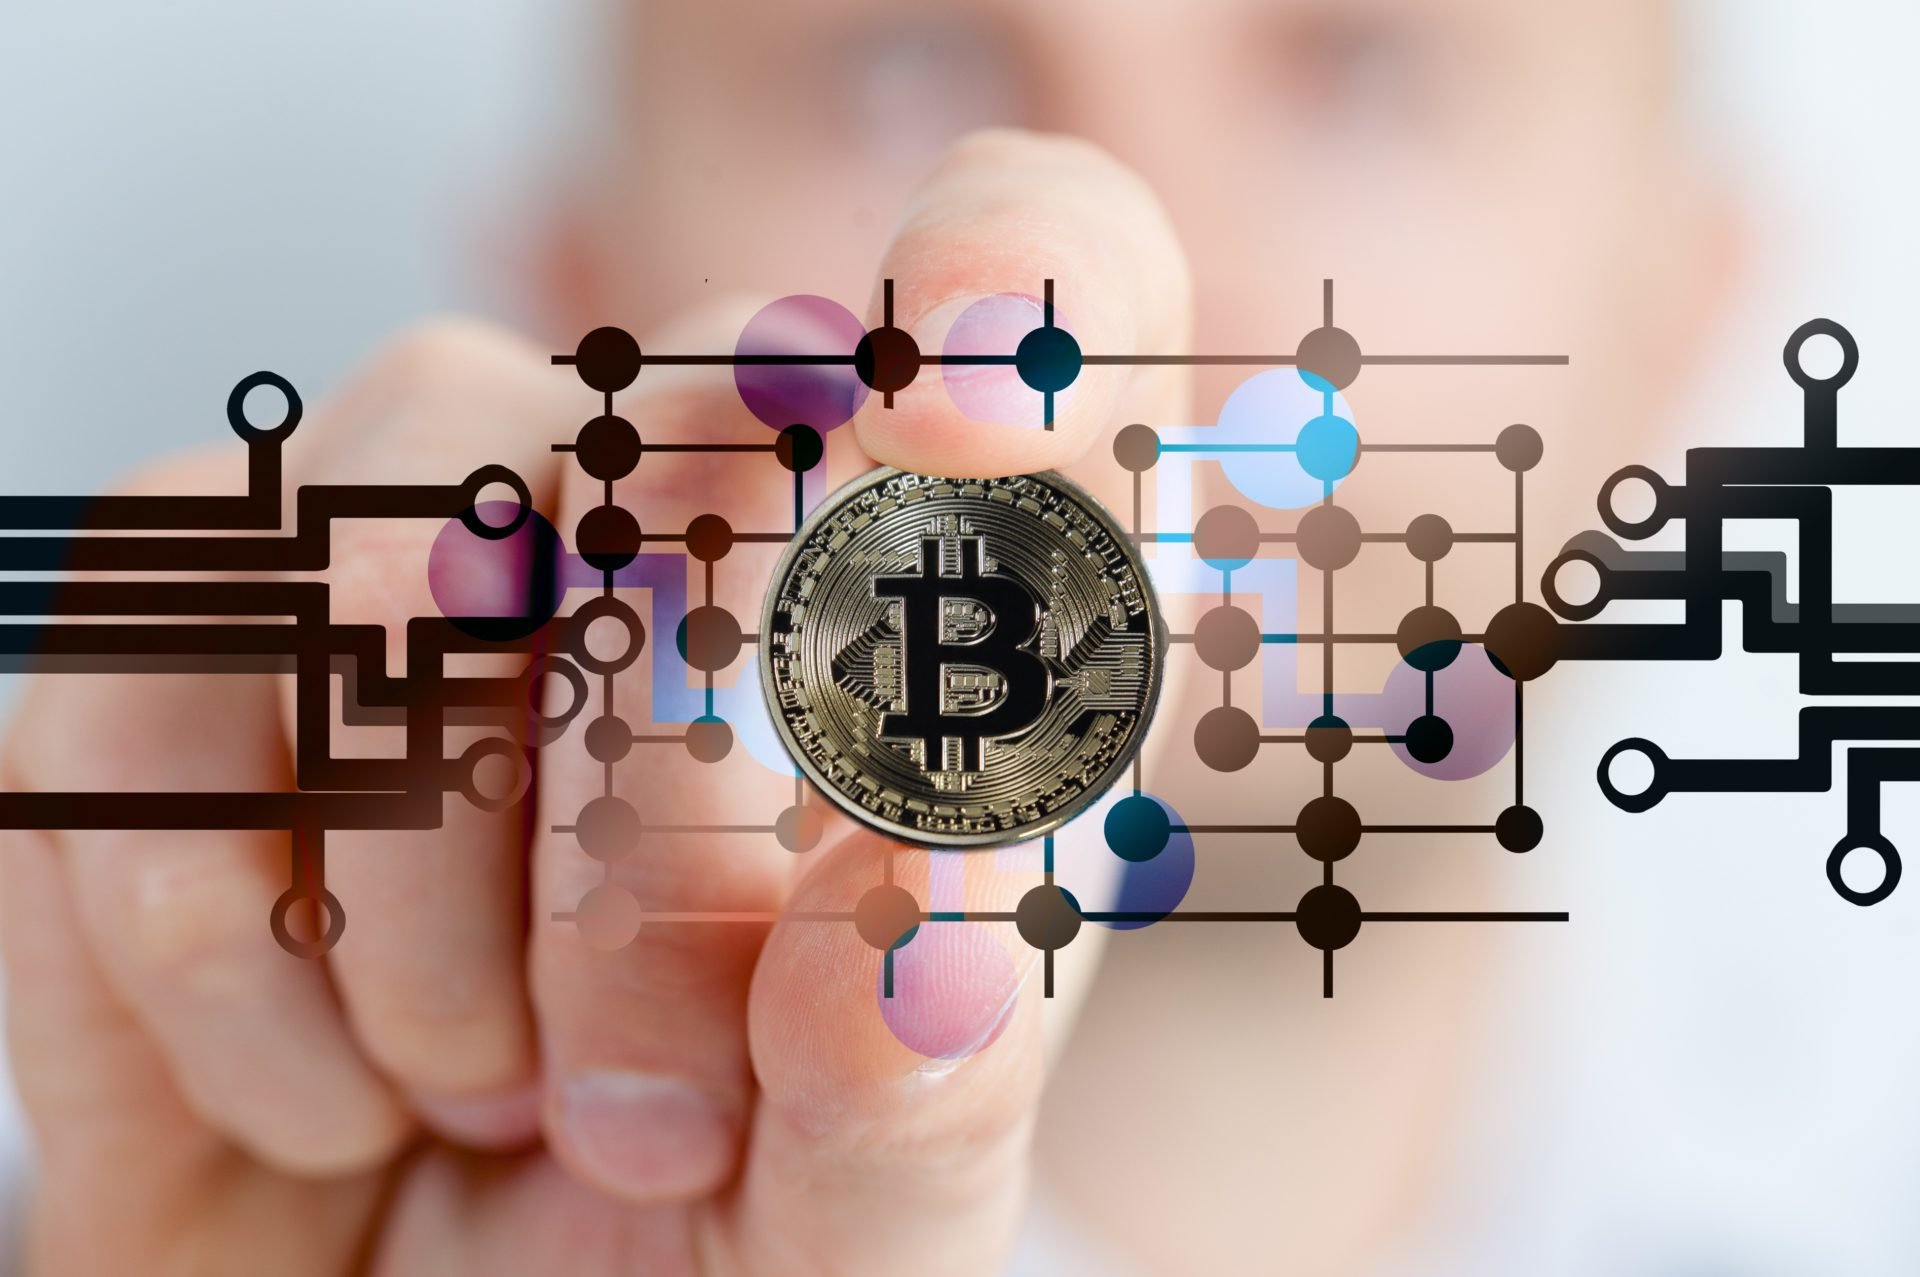 Who Wants To Be A Millionaire? How To Make Money With Bitcoin